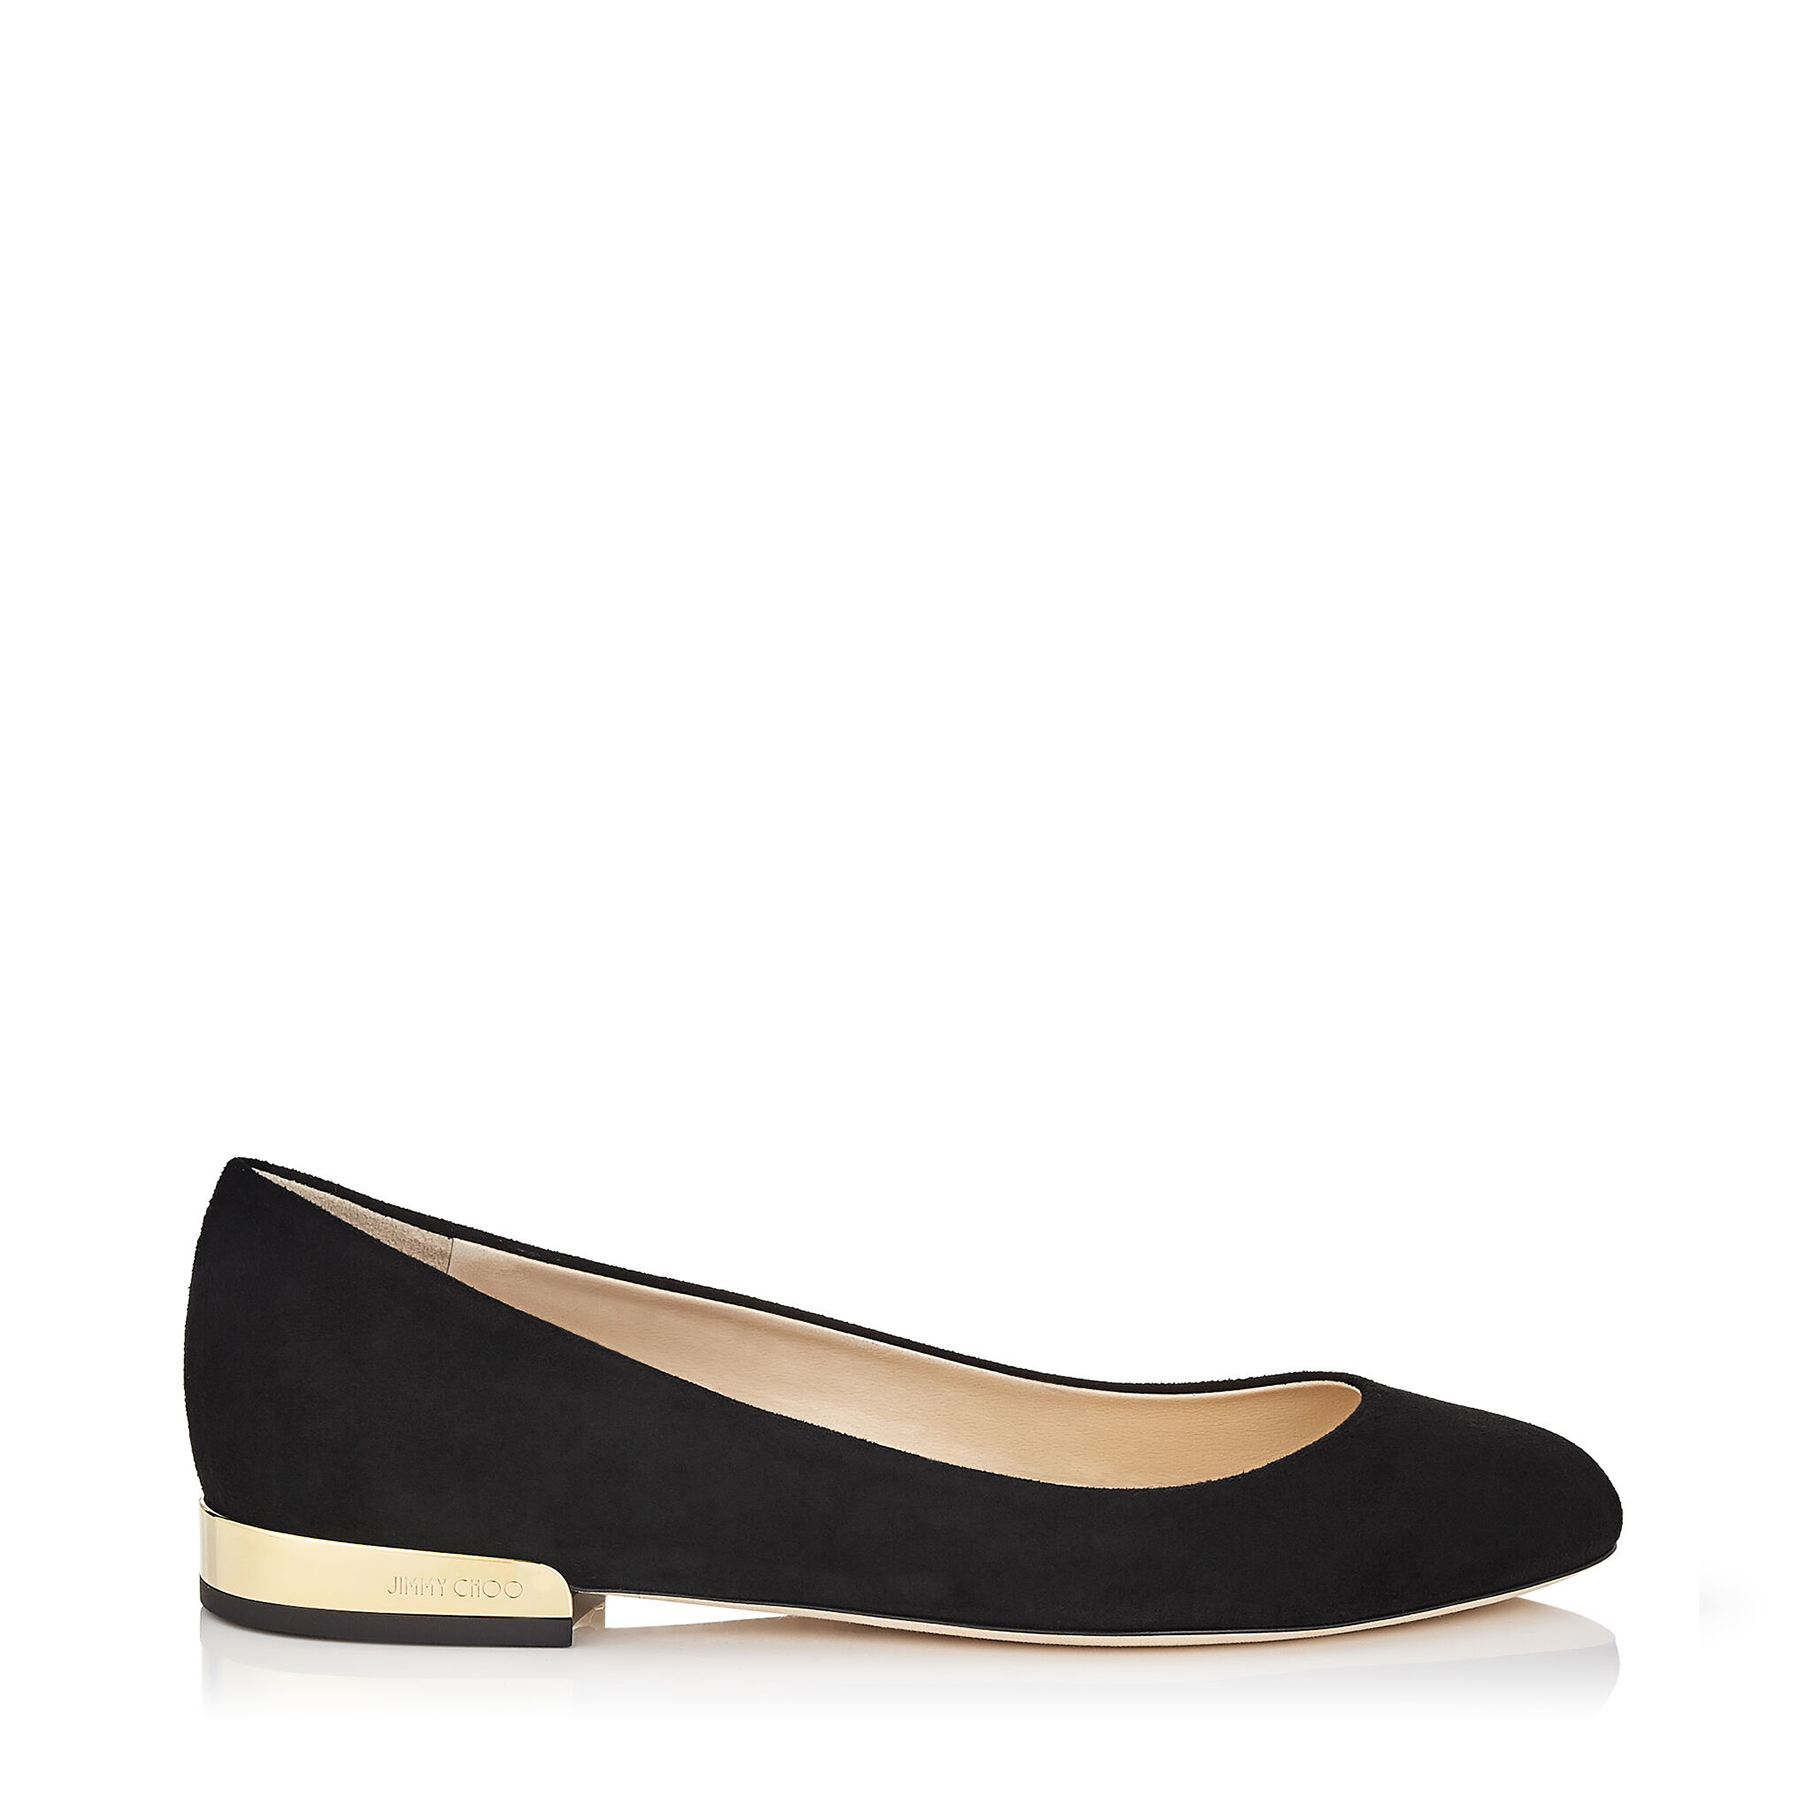 JESSIE FLAT Black Suede Round Toe Pumps by Jimmy Choo